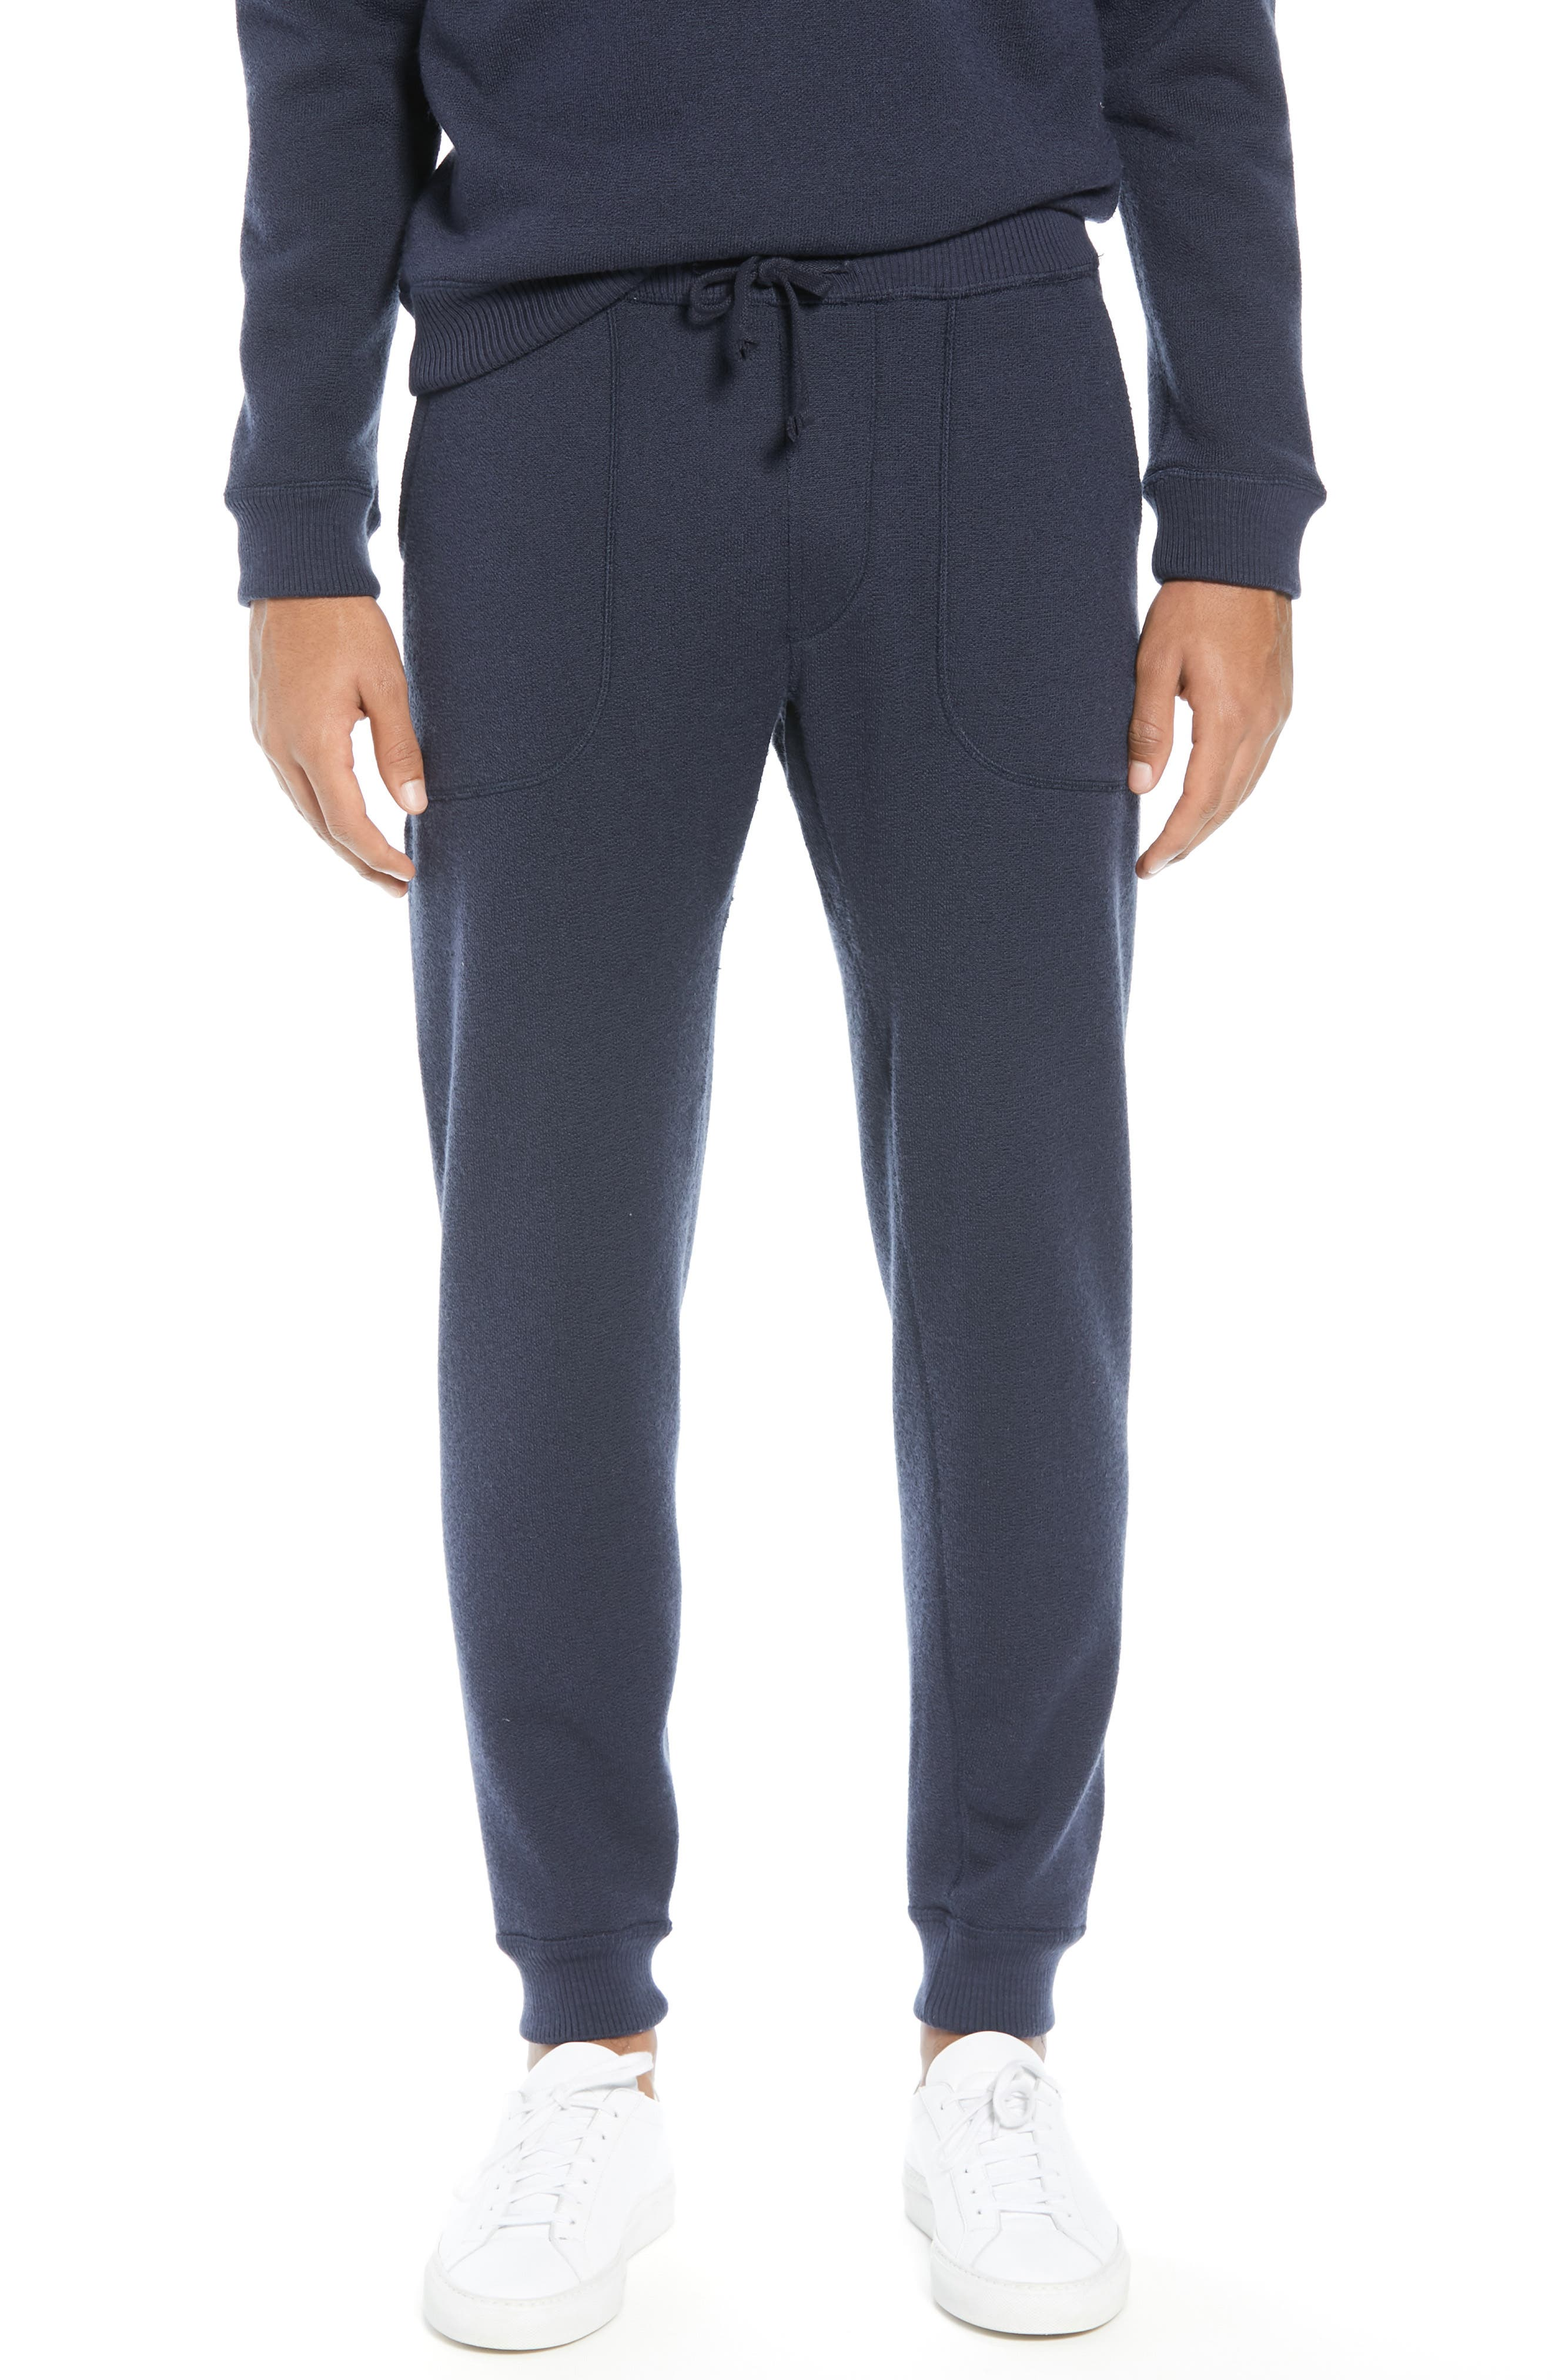 BEST MADE CO.,                             The Merino Wool Fleece Sweatpants,                             Alternate thumbnail 2, color,                             NAVY